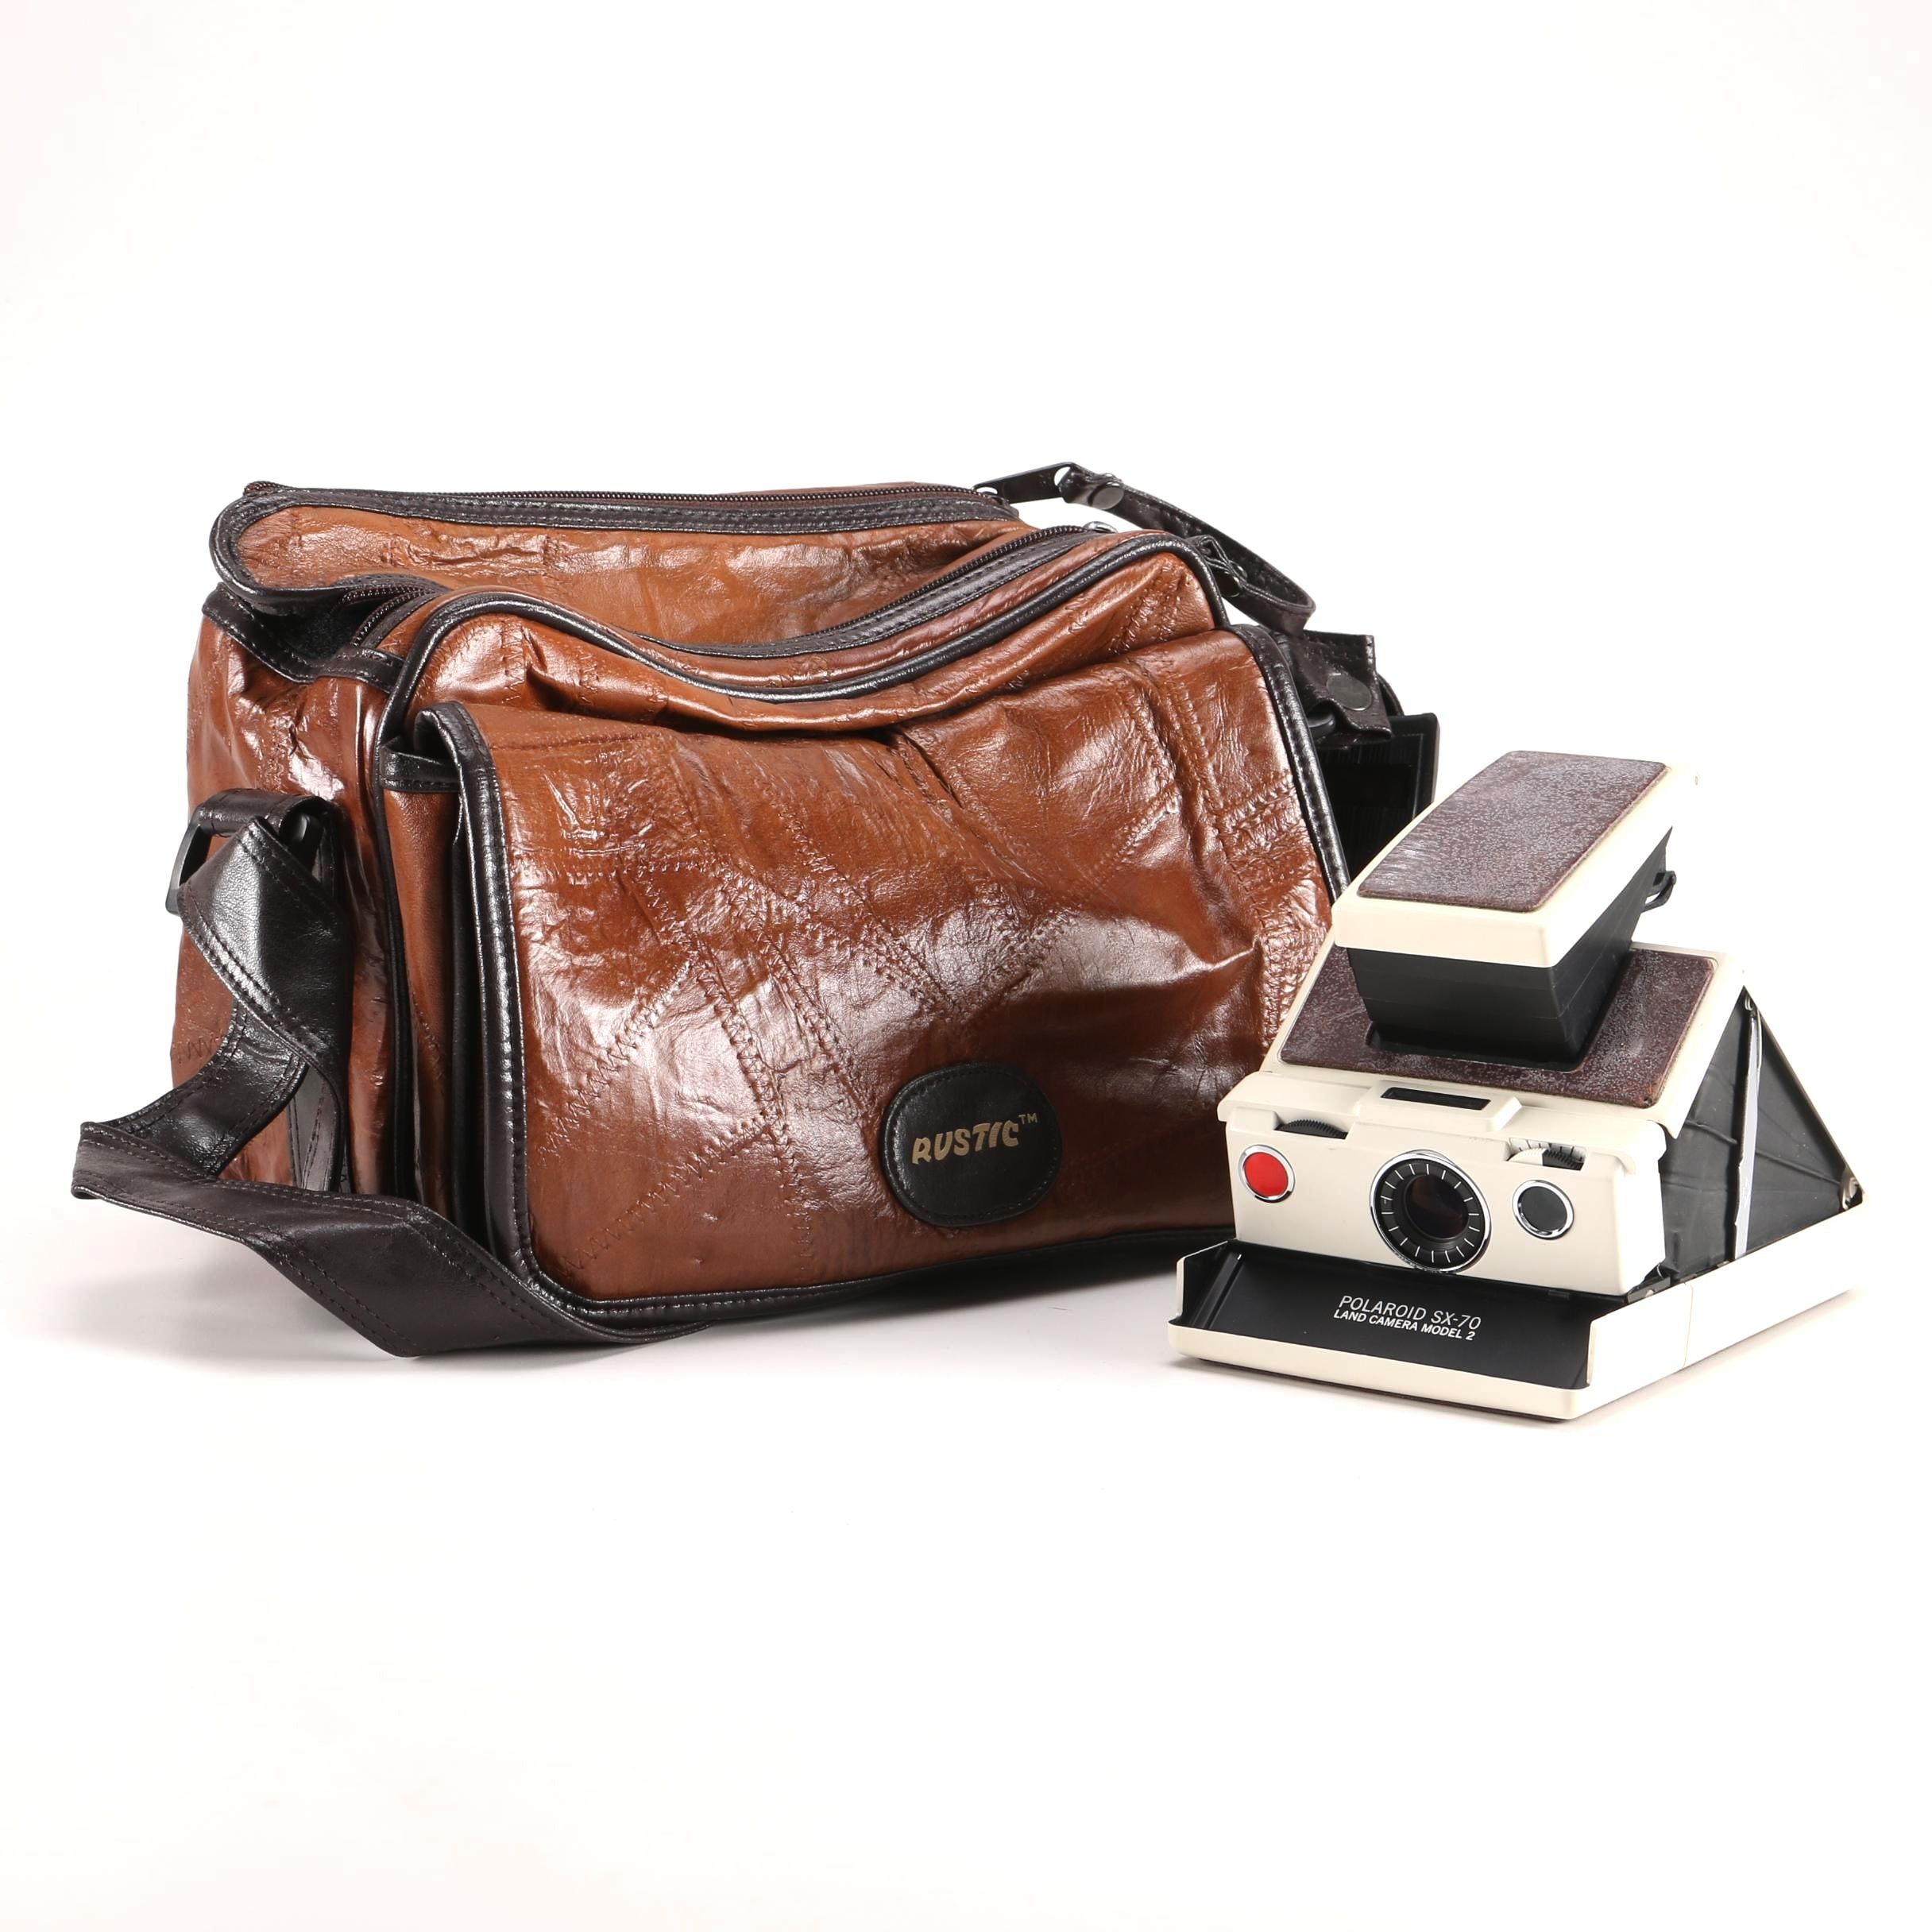 Vintage Polaroid SX-70 Land Camera and Rustic Carrying Case